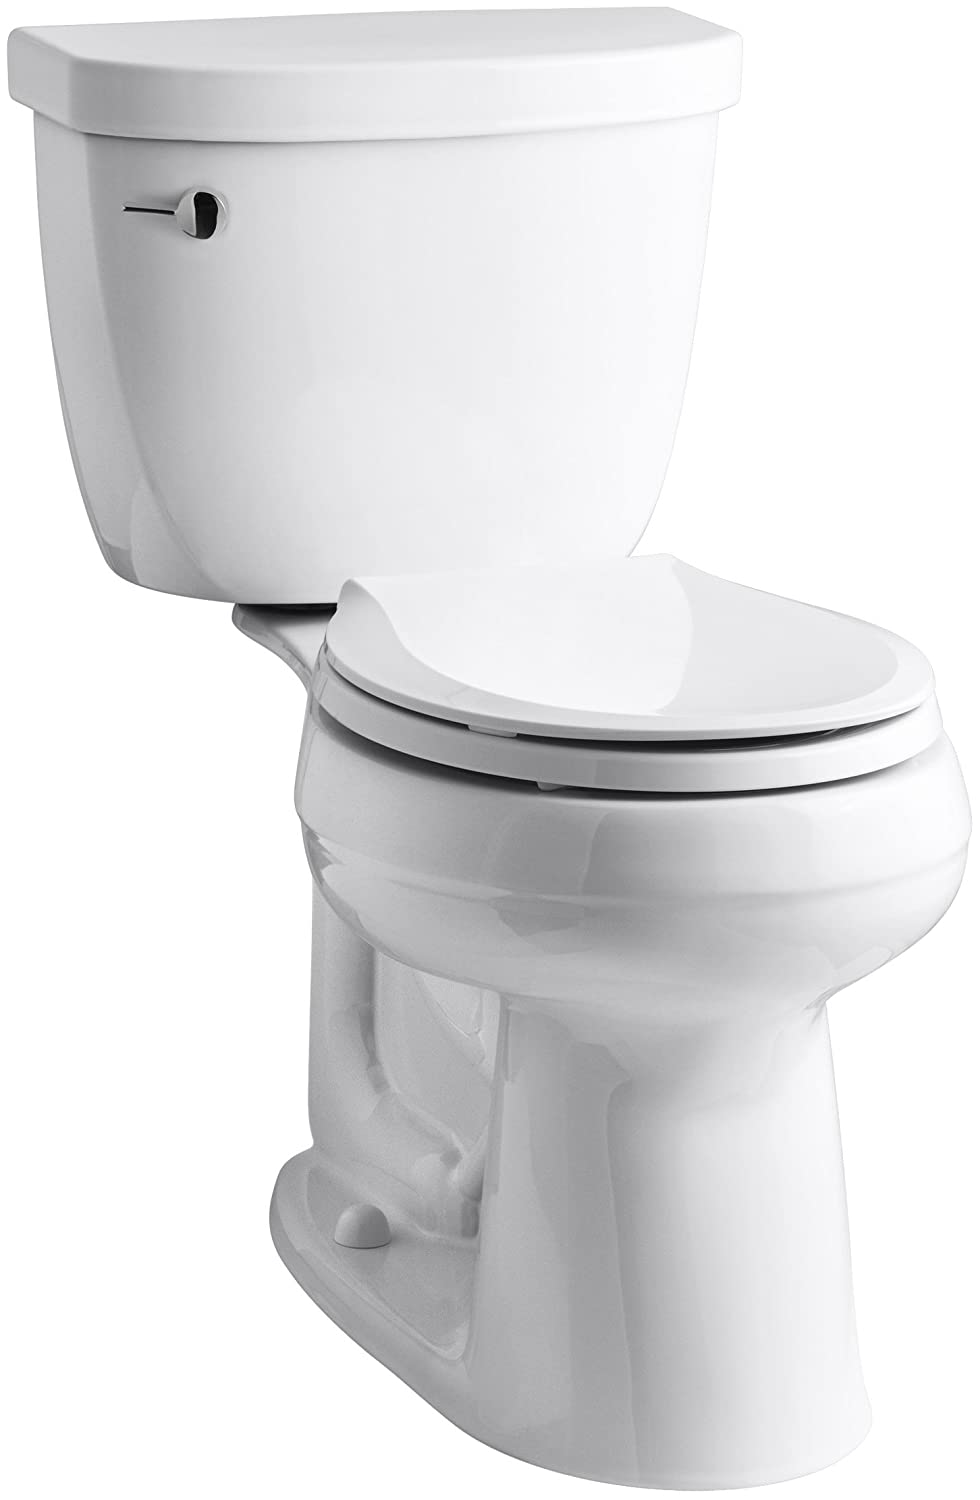 10 Inch Rough In Toilets 2020 Buyer S Guide And Reviews